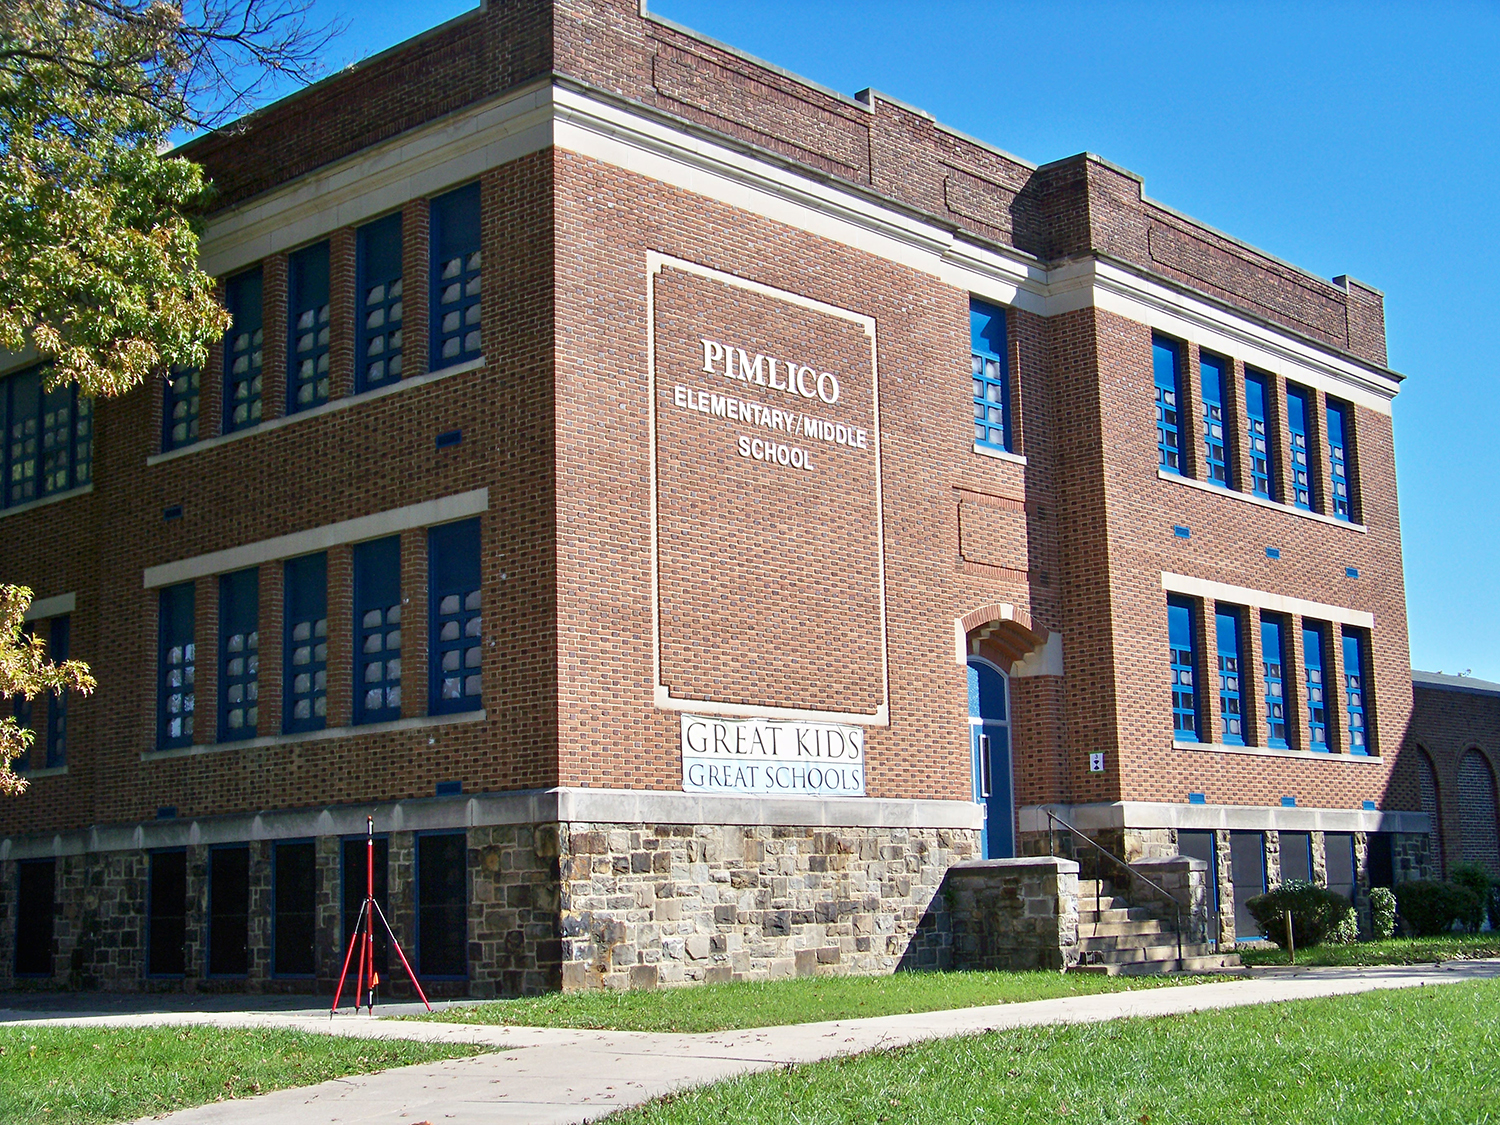 A photo of the exterior of Pimlico Elementary School in Baltimore, MD